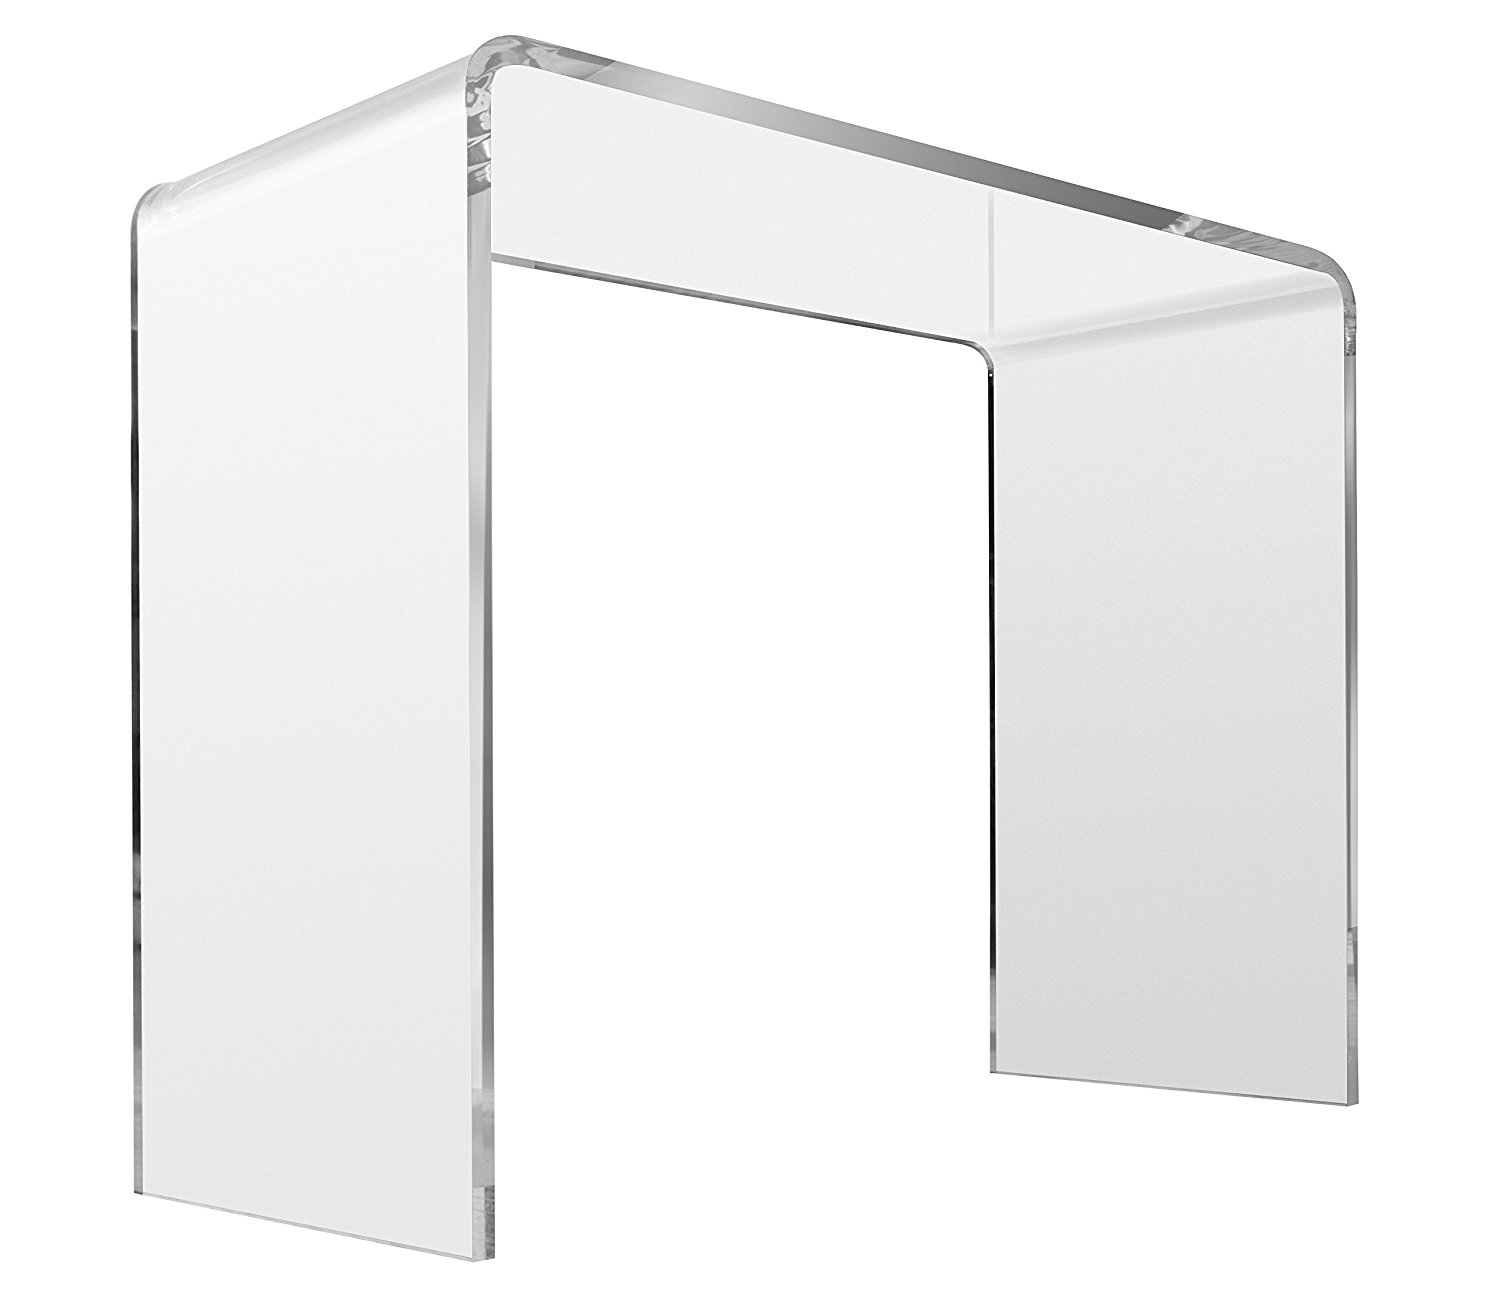 """Crystal Clear Acrylic Console Table - Sofa, Entryway, Couch or Hall Tables - Goes Well with Ghost Chair - Handcrafted of Premium Polished Lucite - by Unum - 38""""L x 15""""D x 29""""H - 3/4"""" Thick"""